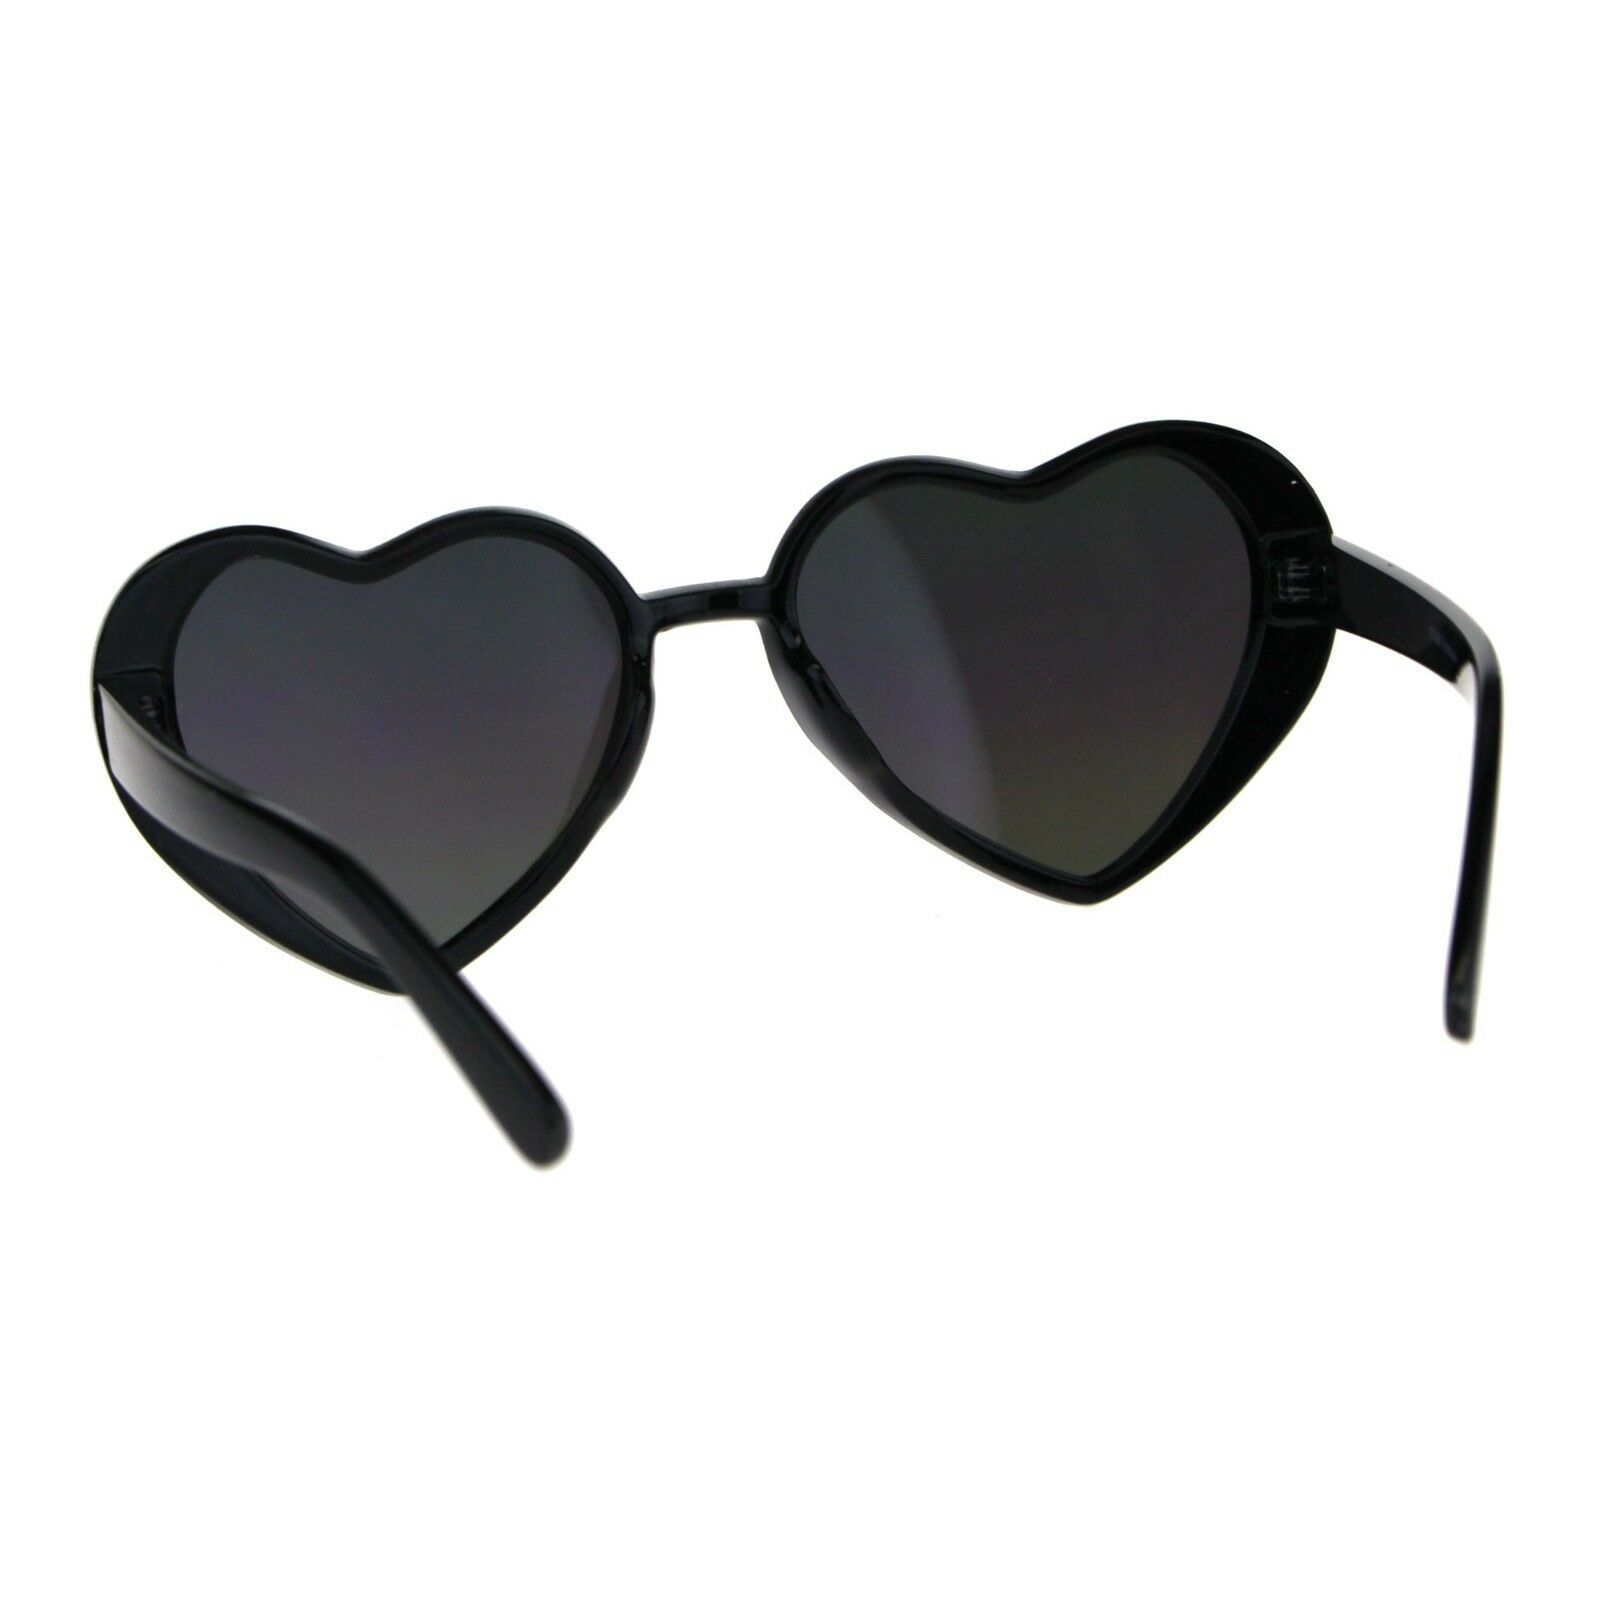 Oversized Heart Shape Sunglasses Womens Fashion Mirrored Lens Shades image 11